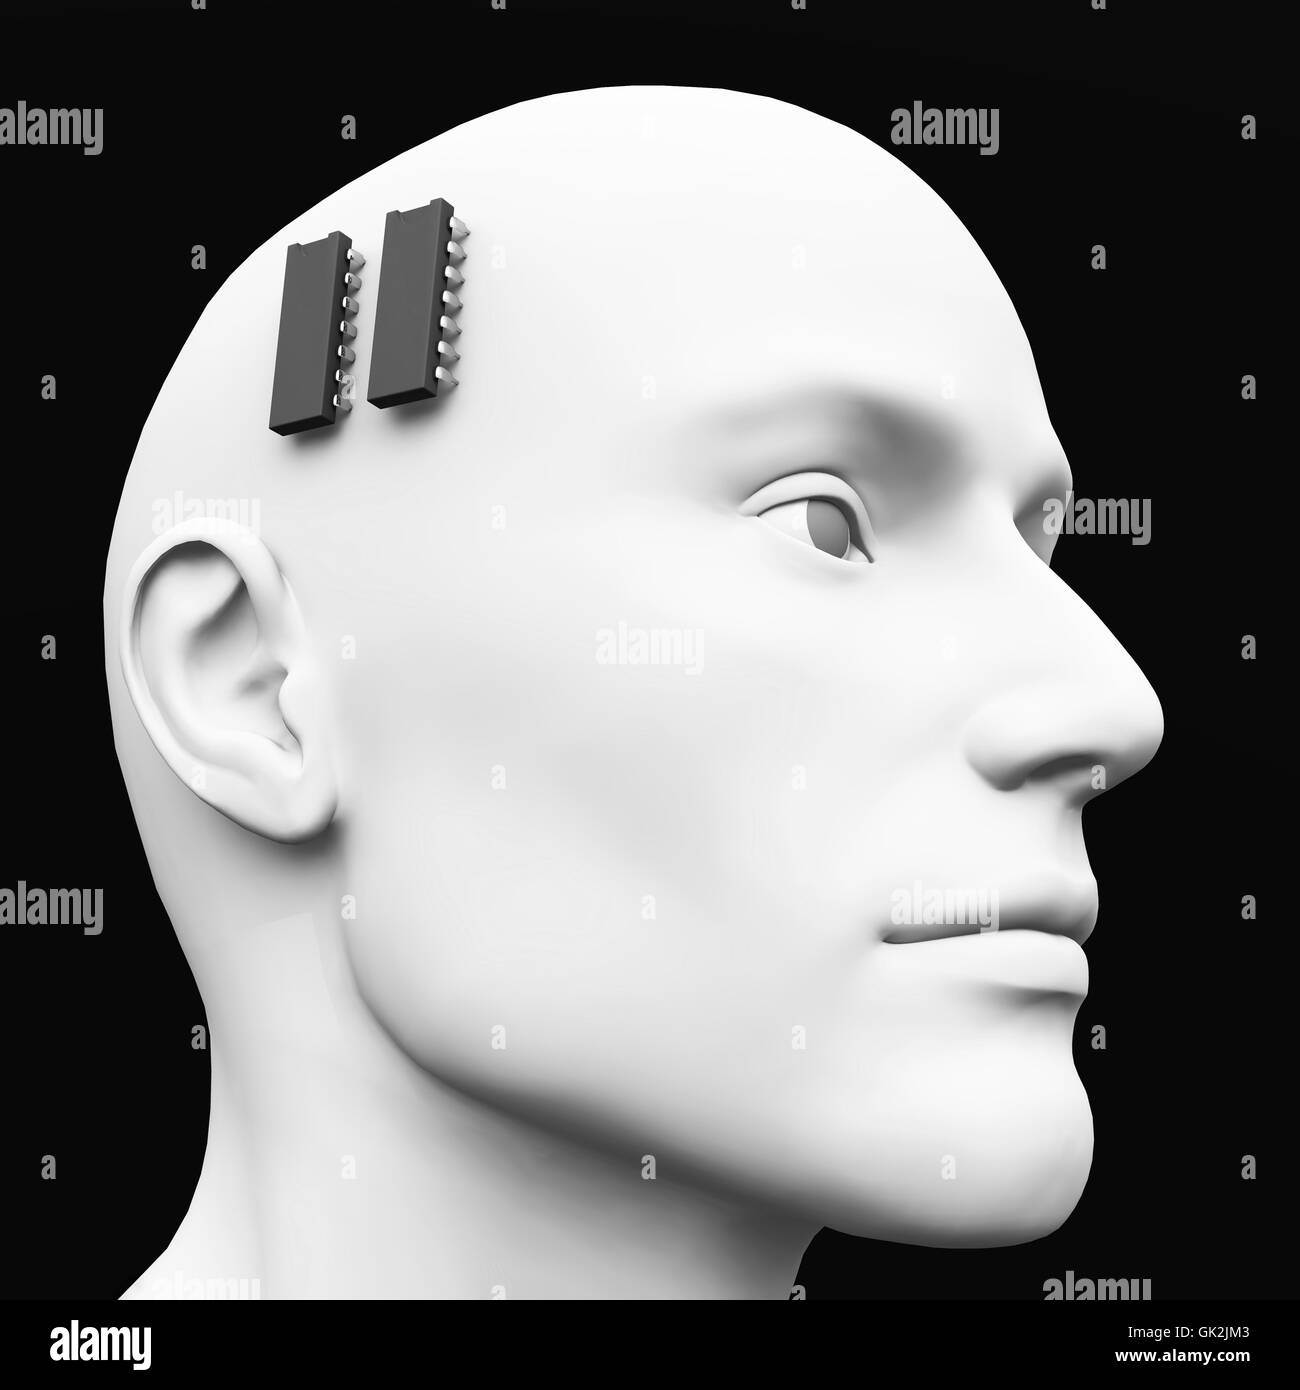 3d - ic brain pacemaker concept - 02 - Stock Image